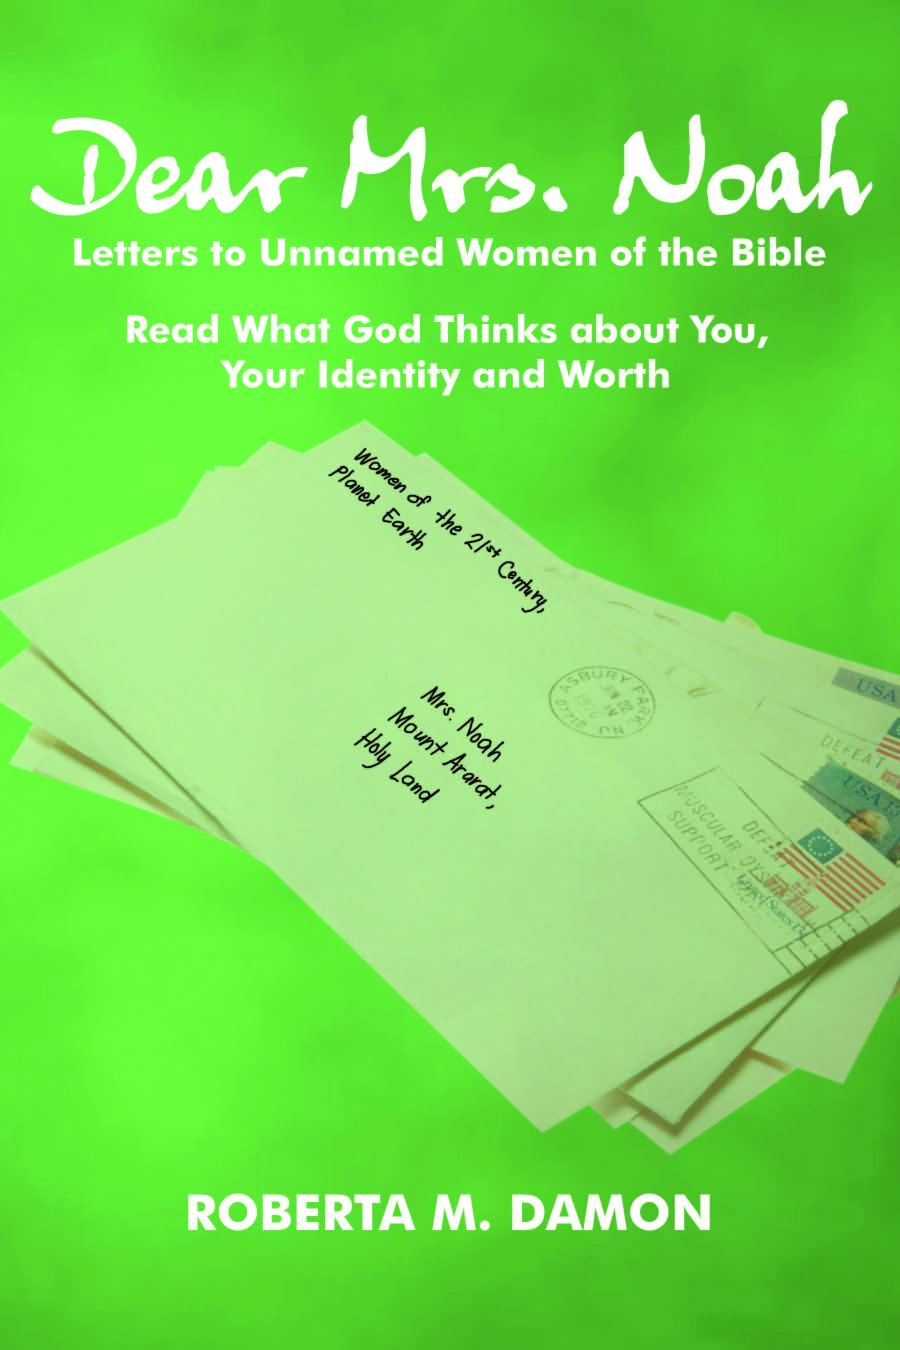 Dear Mrs. Noah: Letters to Unnamed Women of the Bible Now Available